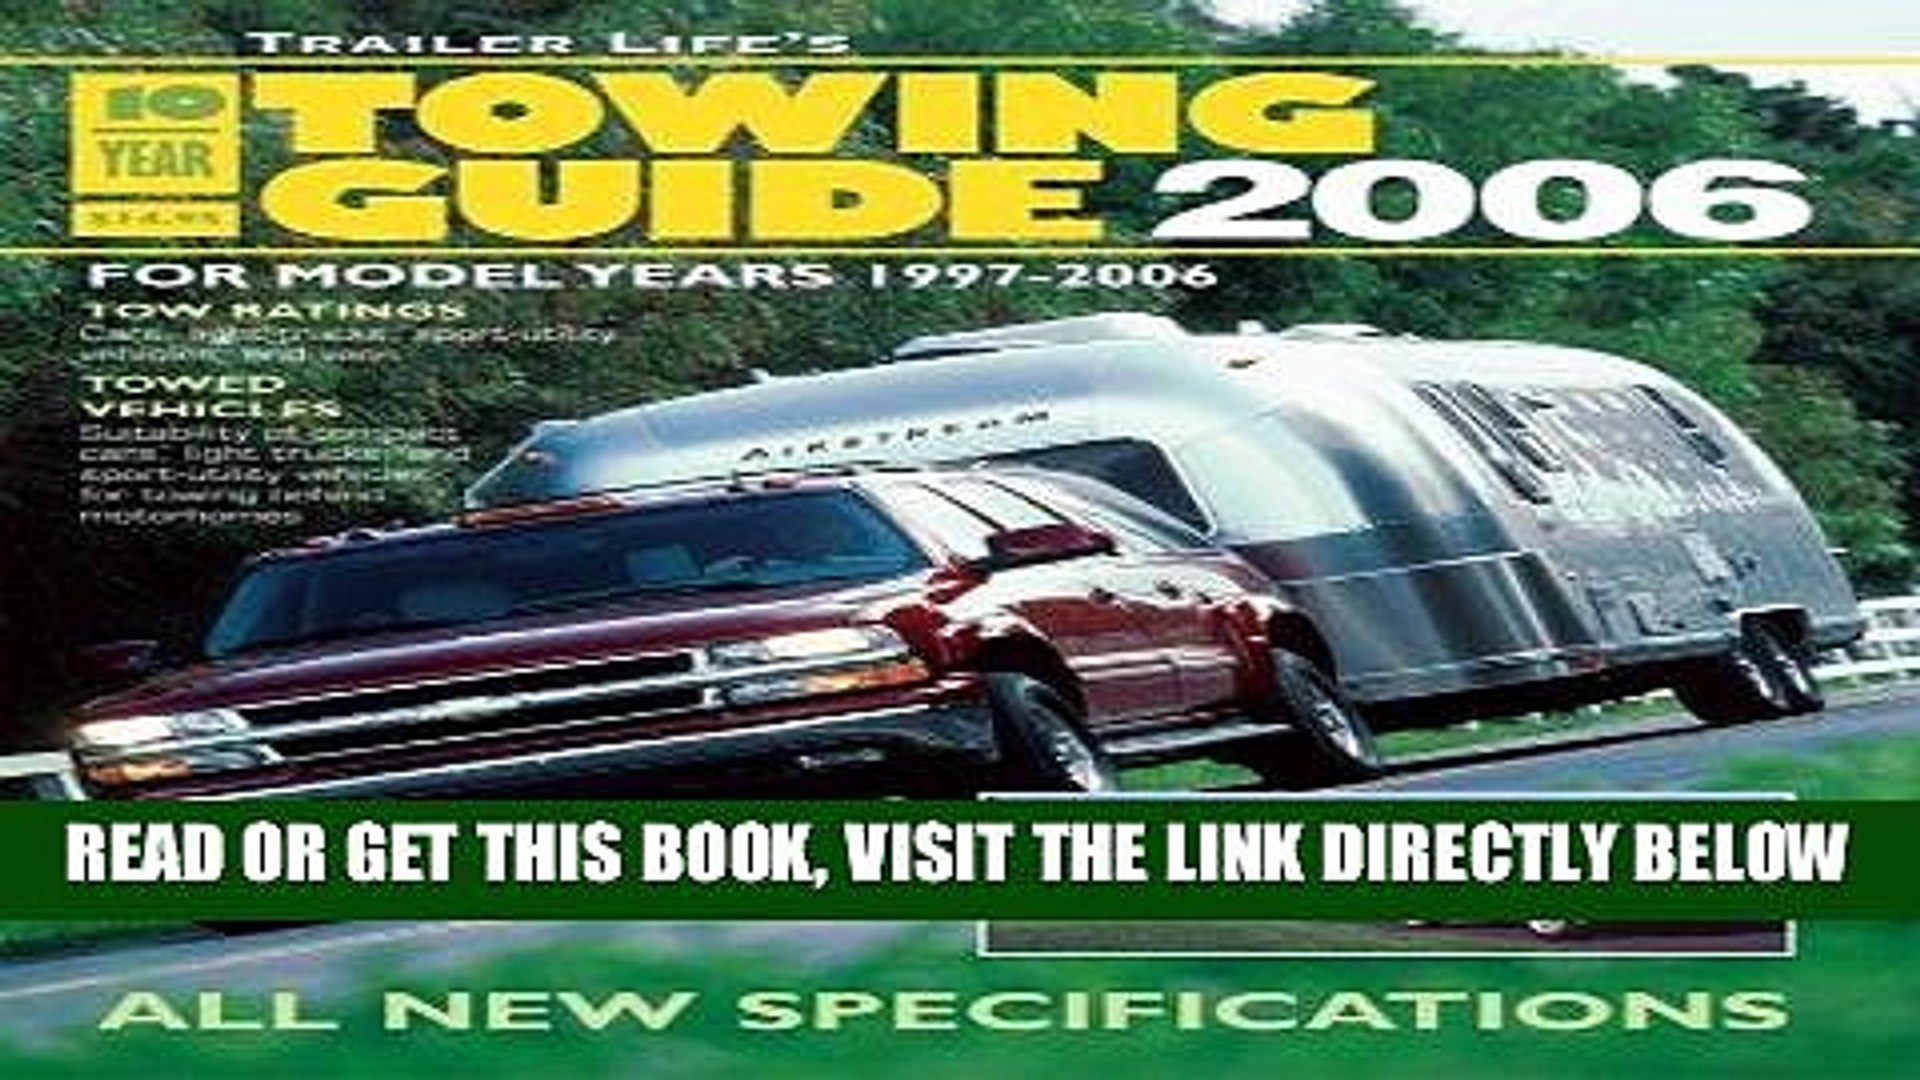 [READ] EBOOK Trailer Life s 10-Year Towing Guide 2006: For Model Years 1997-2006 BEST COLLECTION